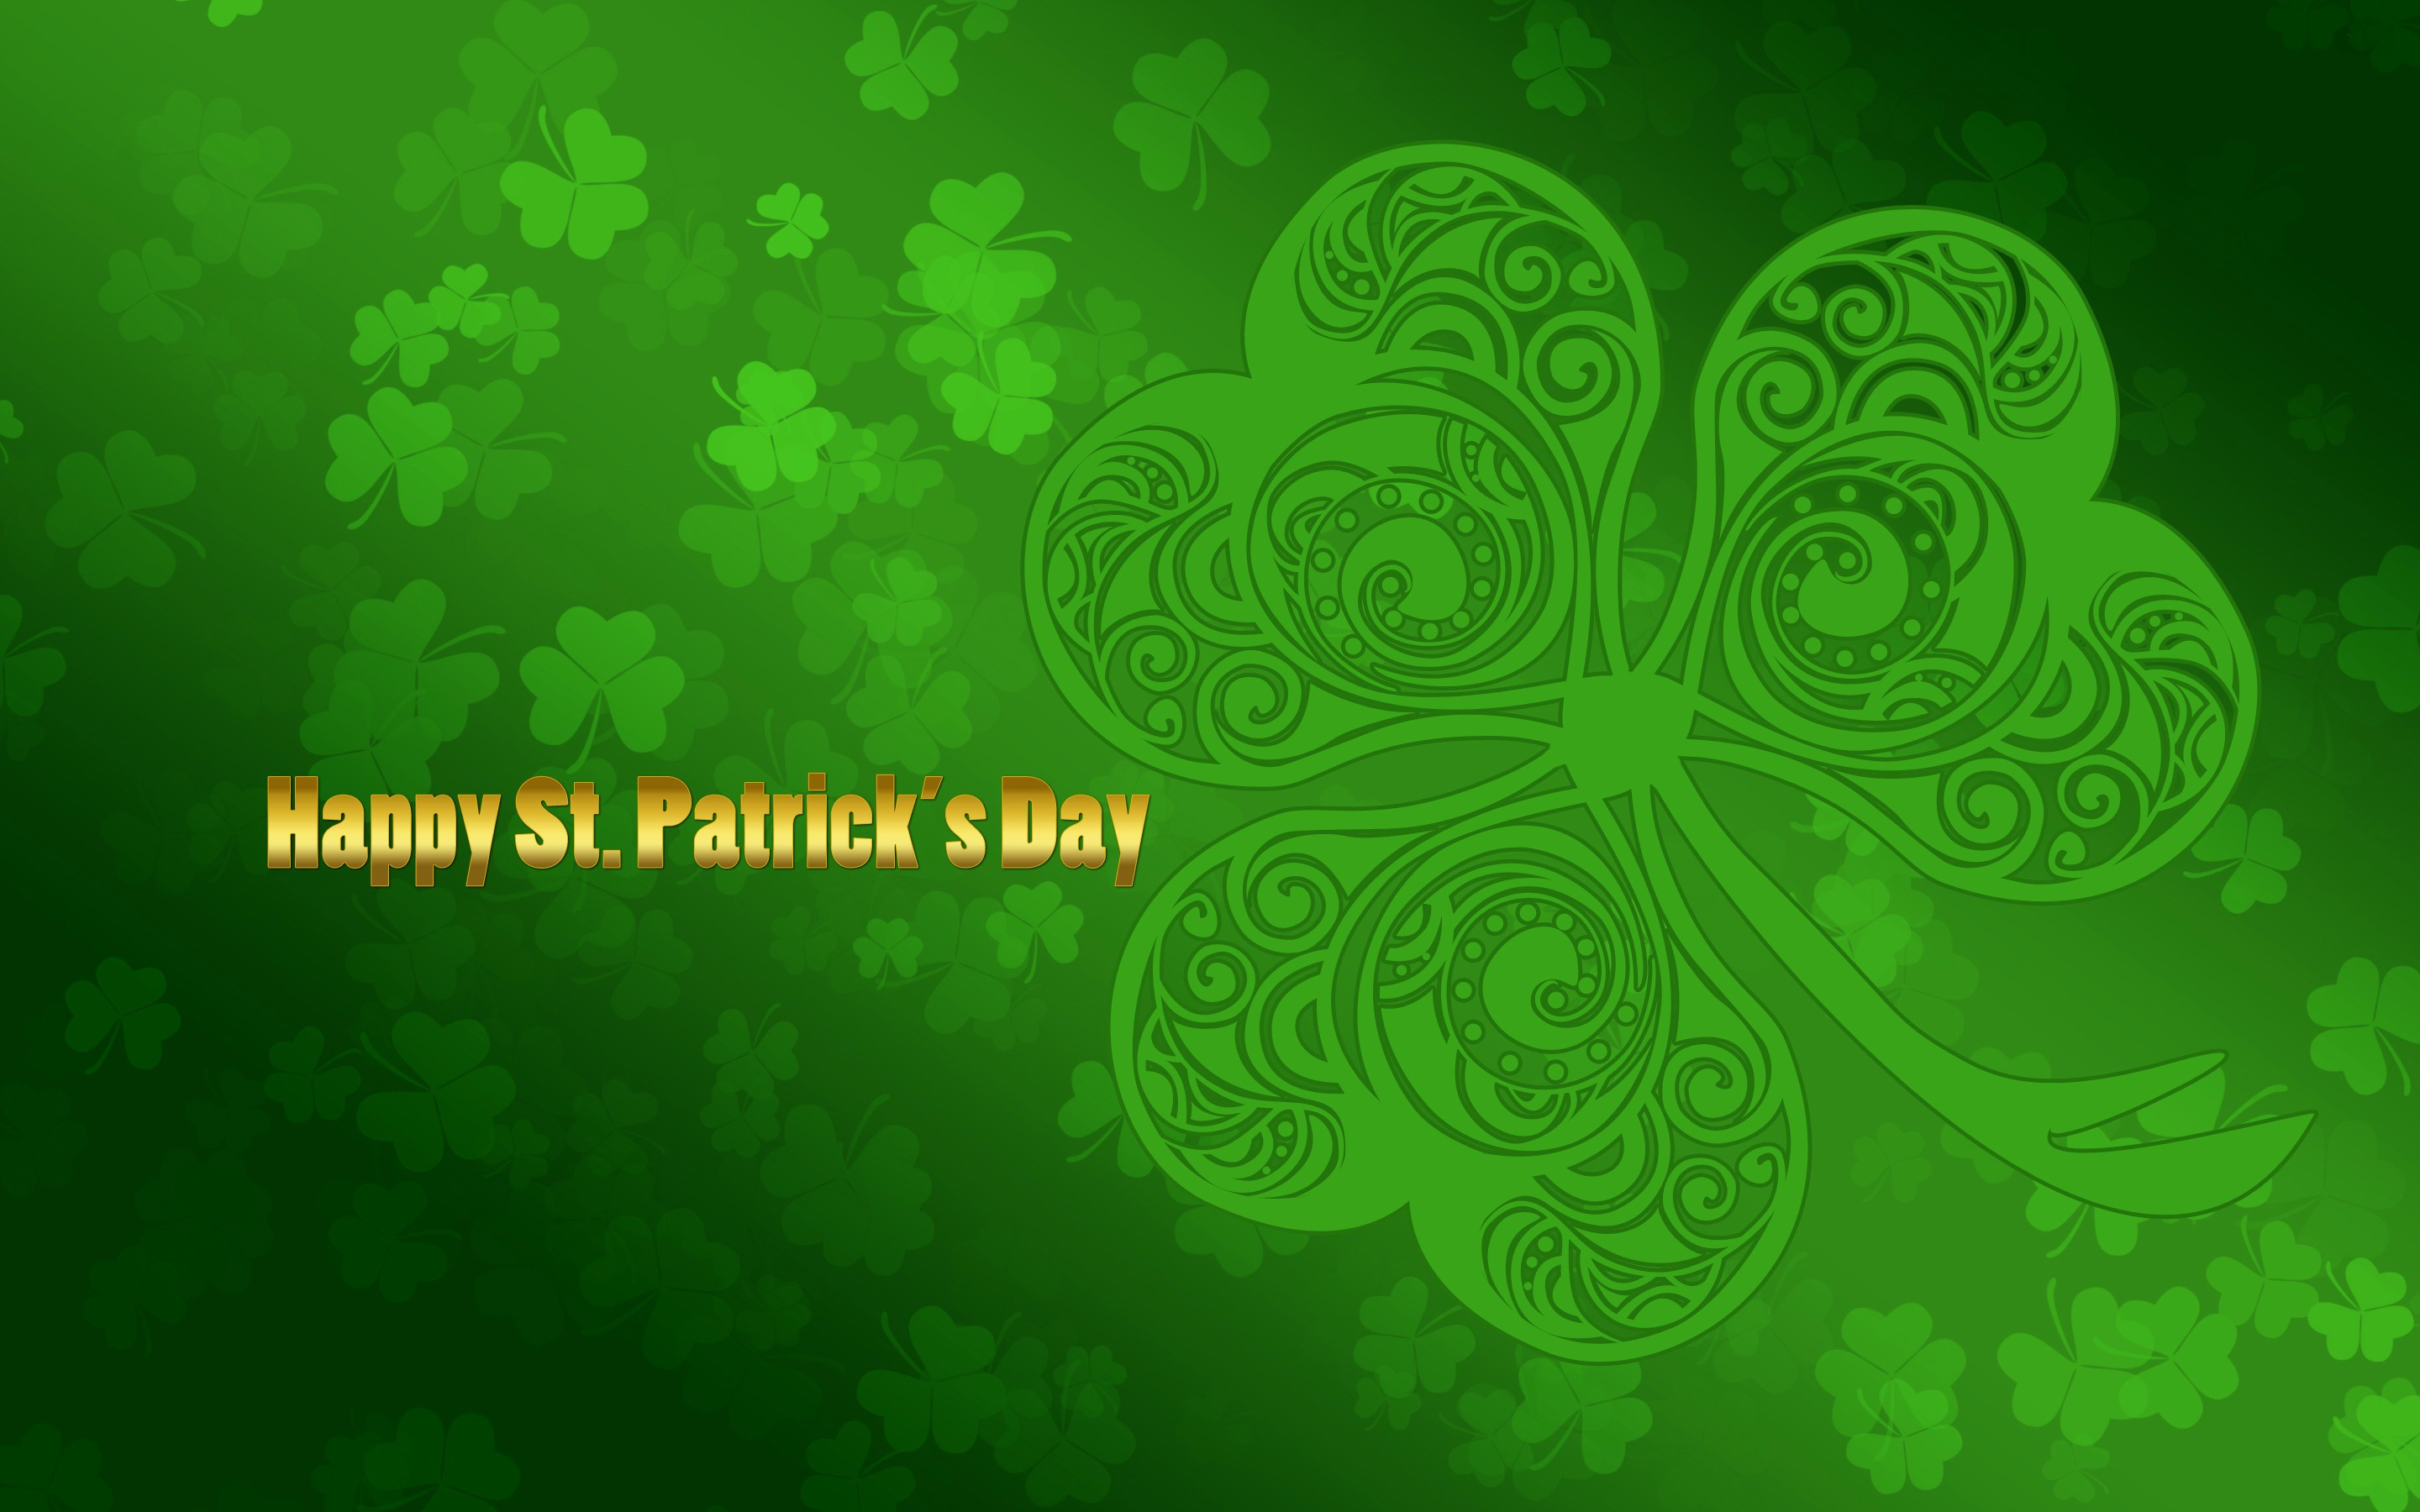 Happy Saint Patrick S Day   St Patricks Day Wallpaper Download 2880x1800